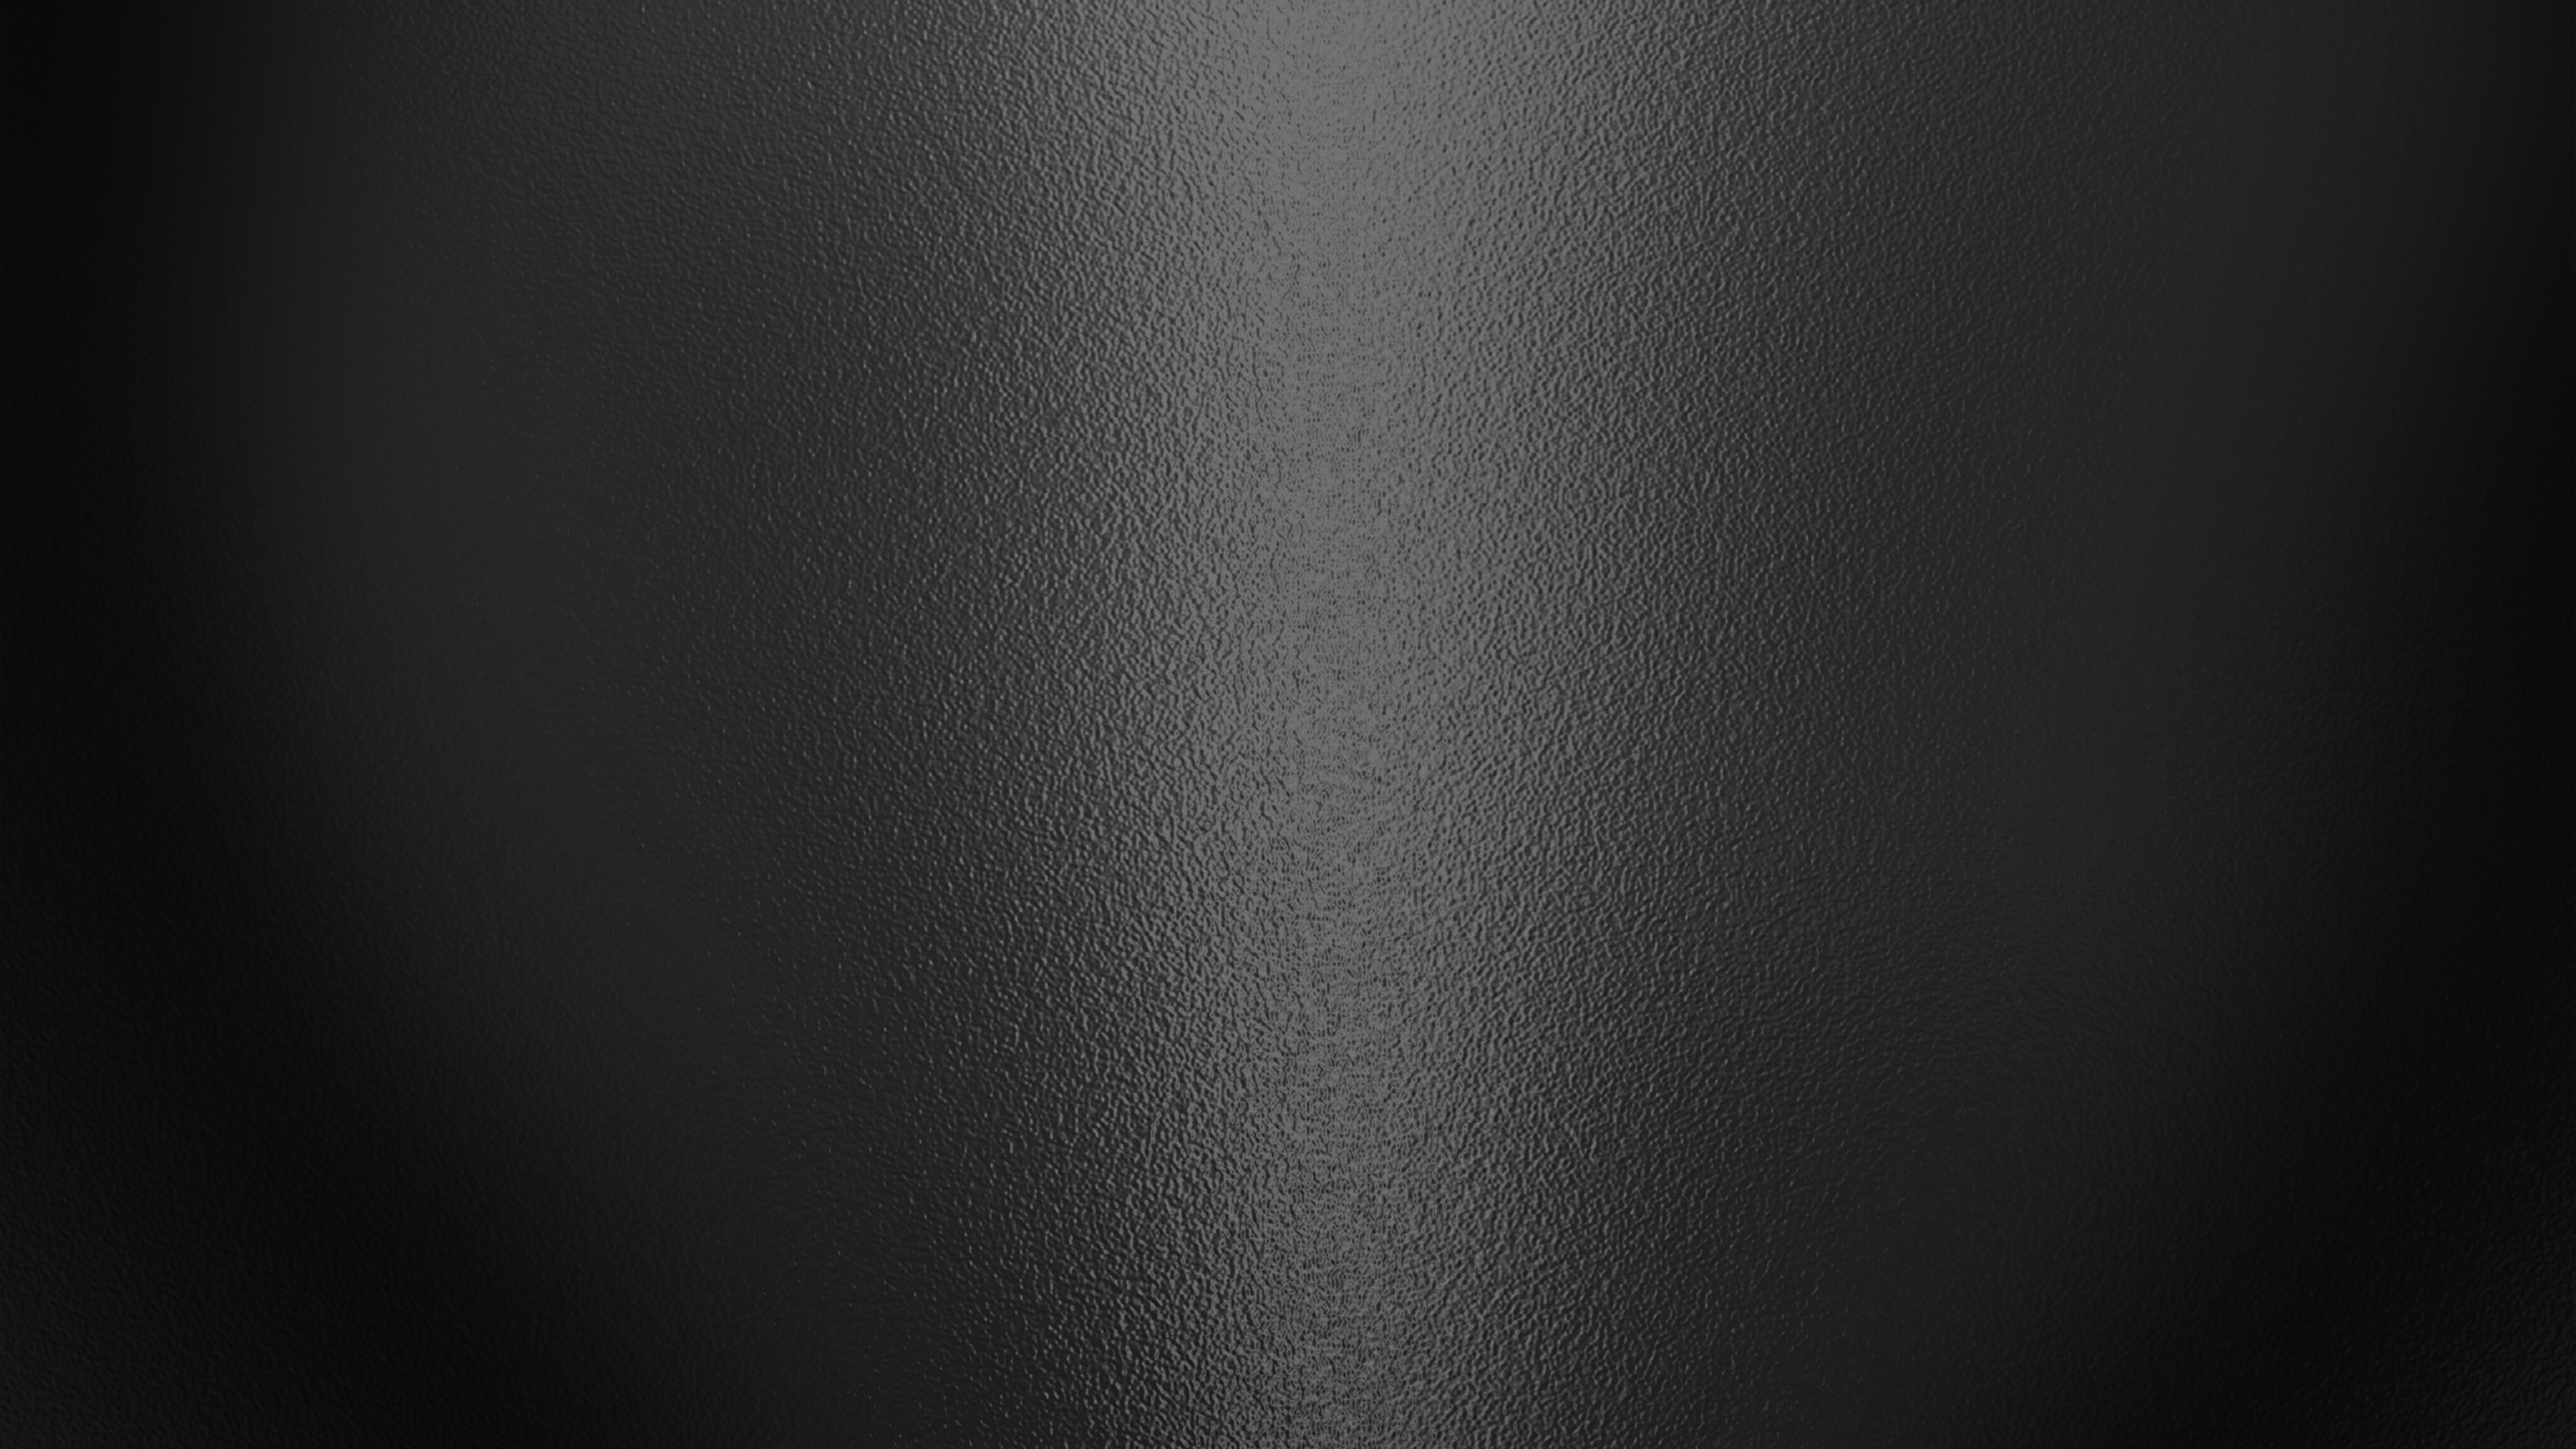 Black Metal Texture Wallpaper